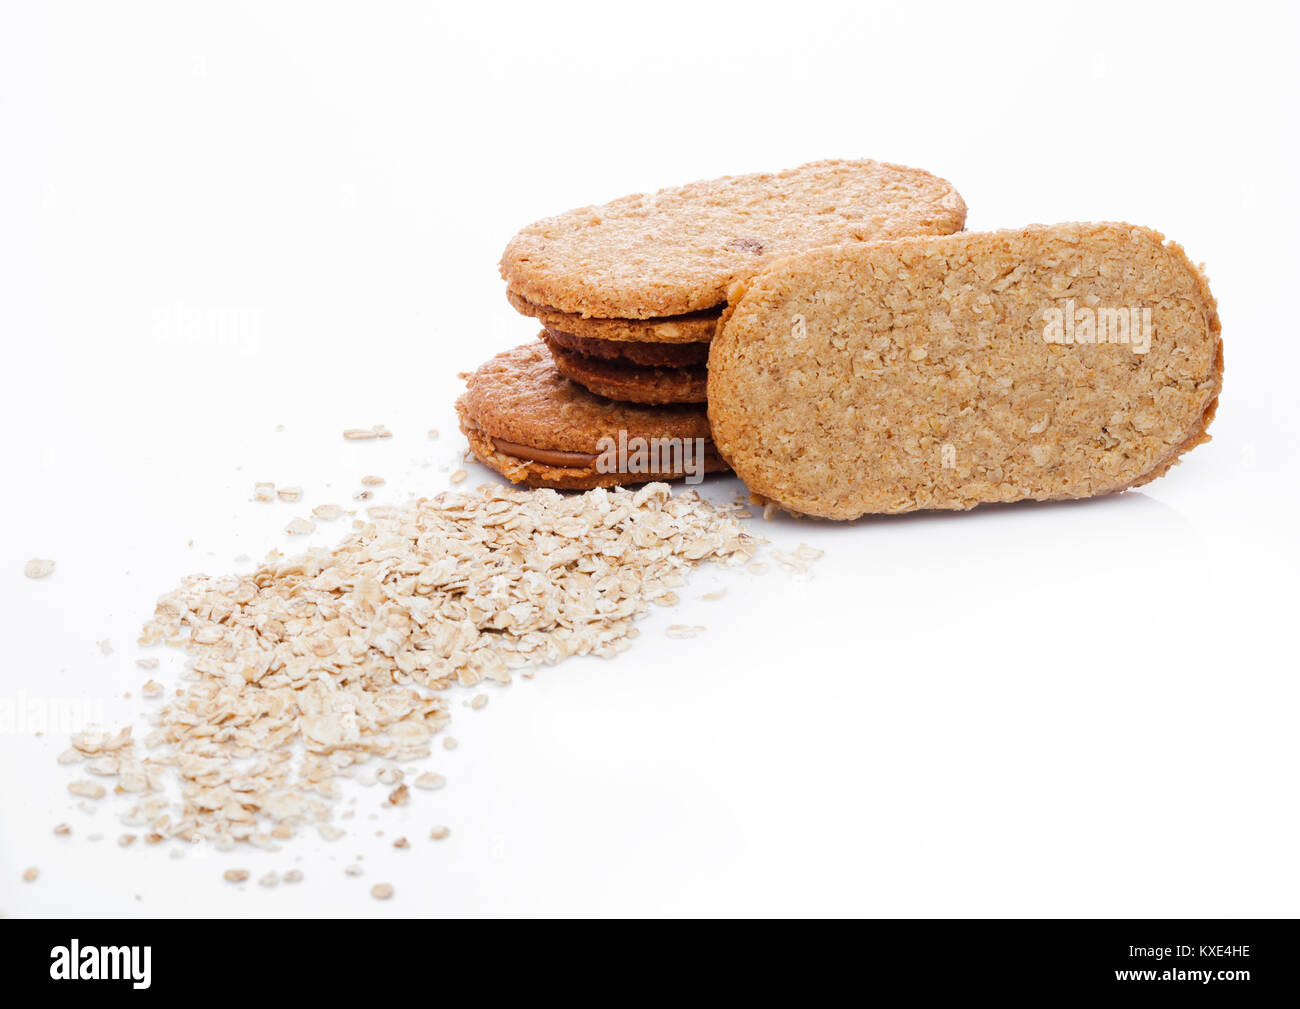 Grain Bio Healthy Bio Breakfast Grain Biscuits With Oats Stock Photo